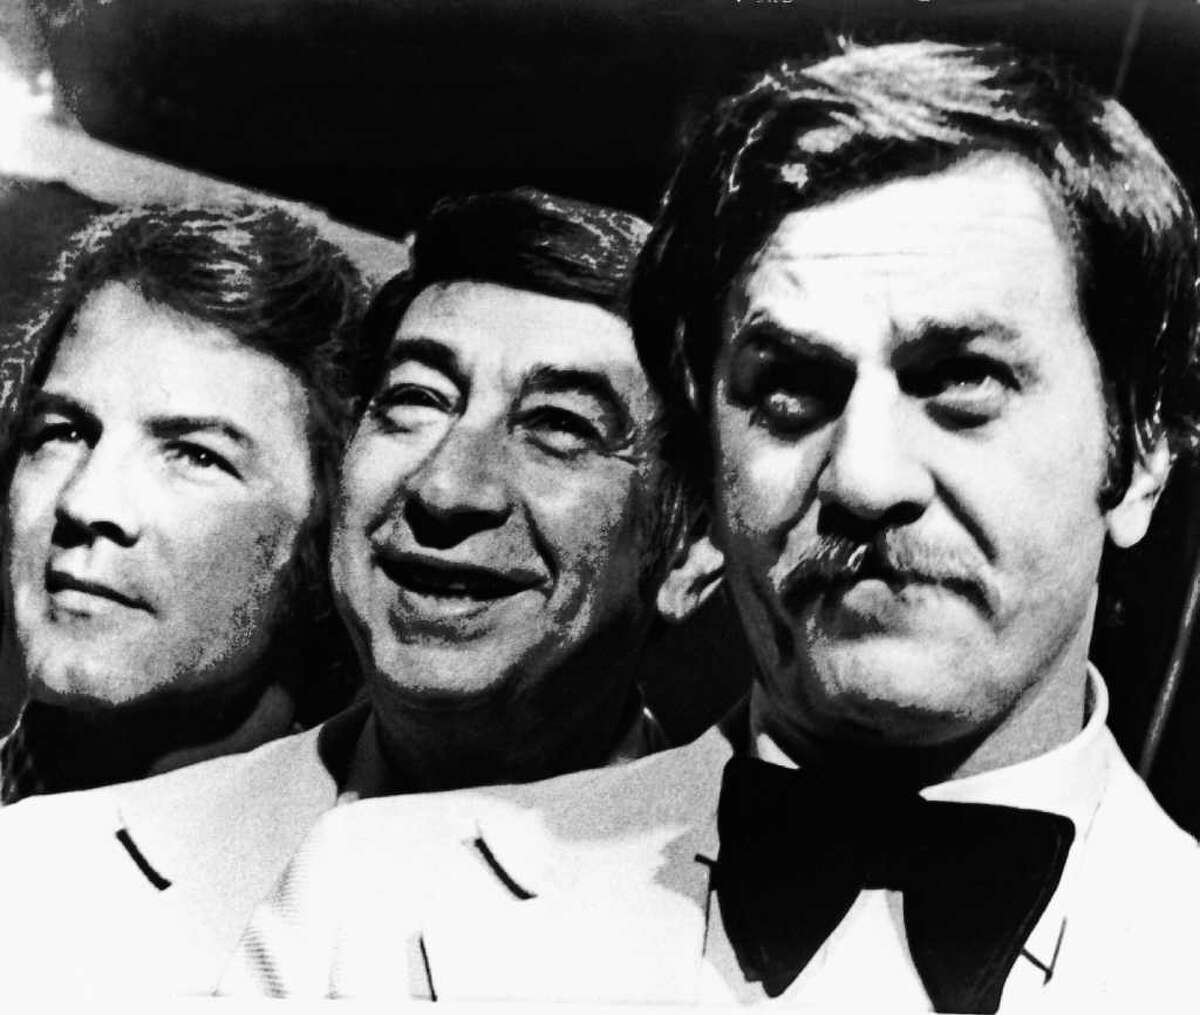 FILE - This Nov. 20, 1973, file photo shows, from left, Frank Gifford, Howard Cosell and Don Meredith, before the start of their ABC-TV football telecast, in Atlanta, Georgia. Meredith died in Santa Fe, N.M., after suffering a brain hemorrhage and lapsing into a coma, on Sunday, Dec. 5, 2010. He was 72. (AP Photo/File)